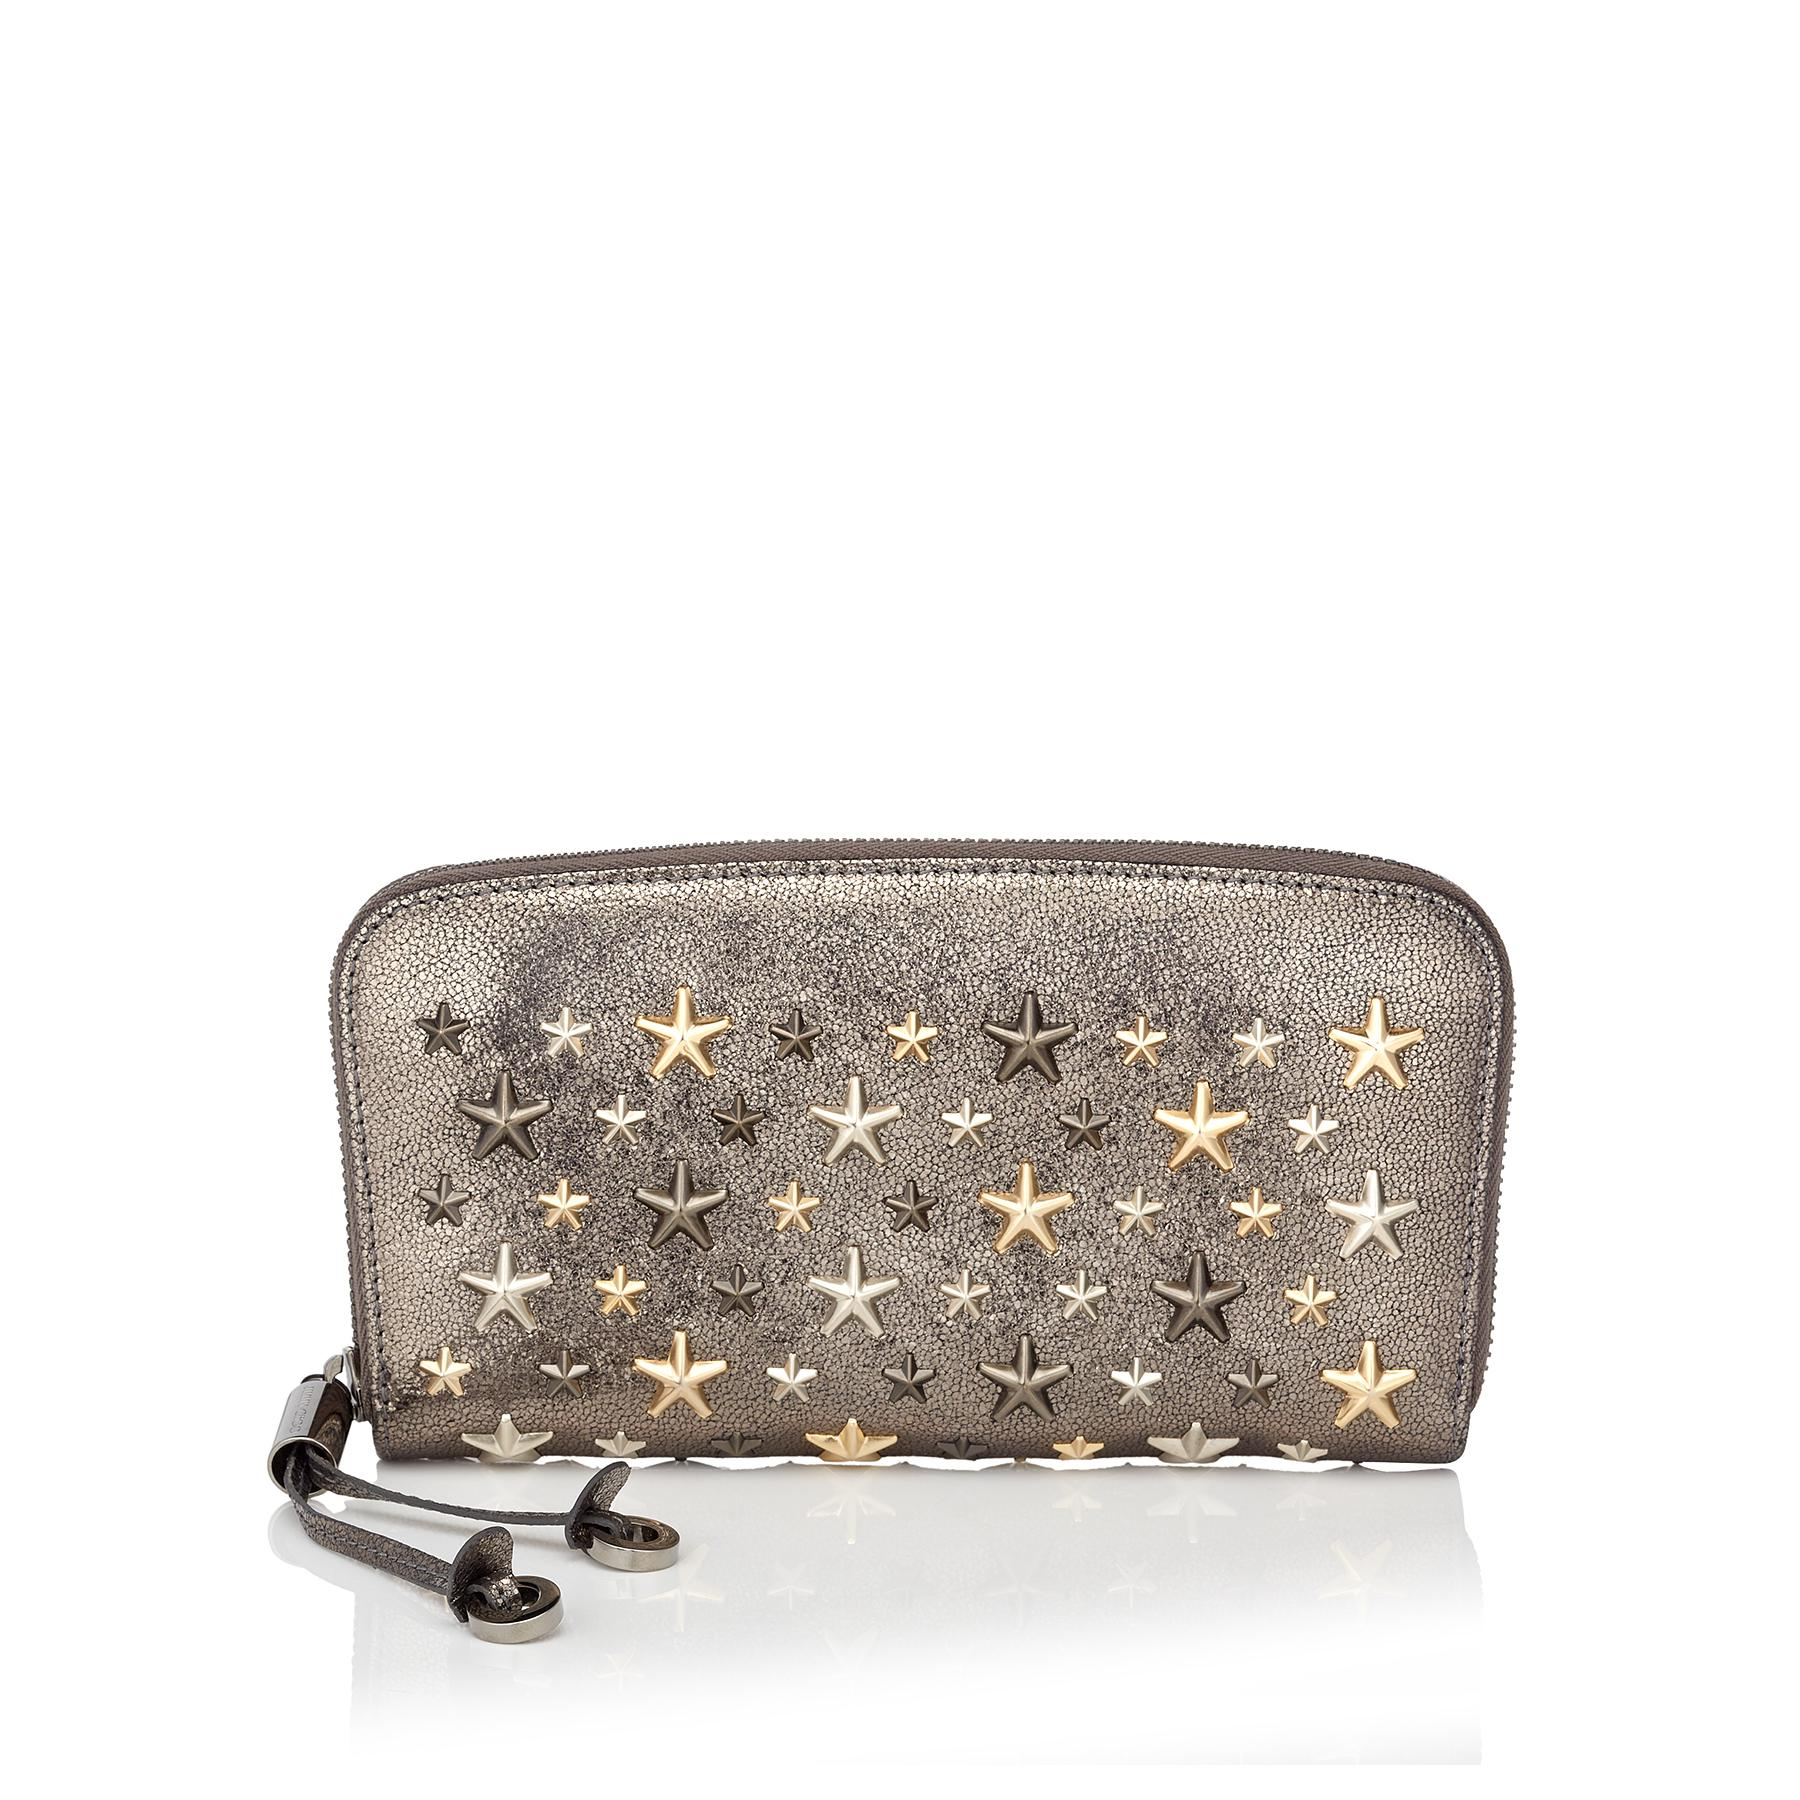 98f0797a5517 Jimmy Choo Filipa Anthracite Glitter Leather Wallet With Metallic ...